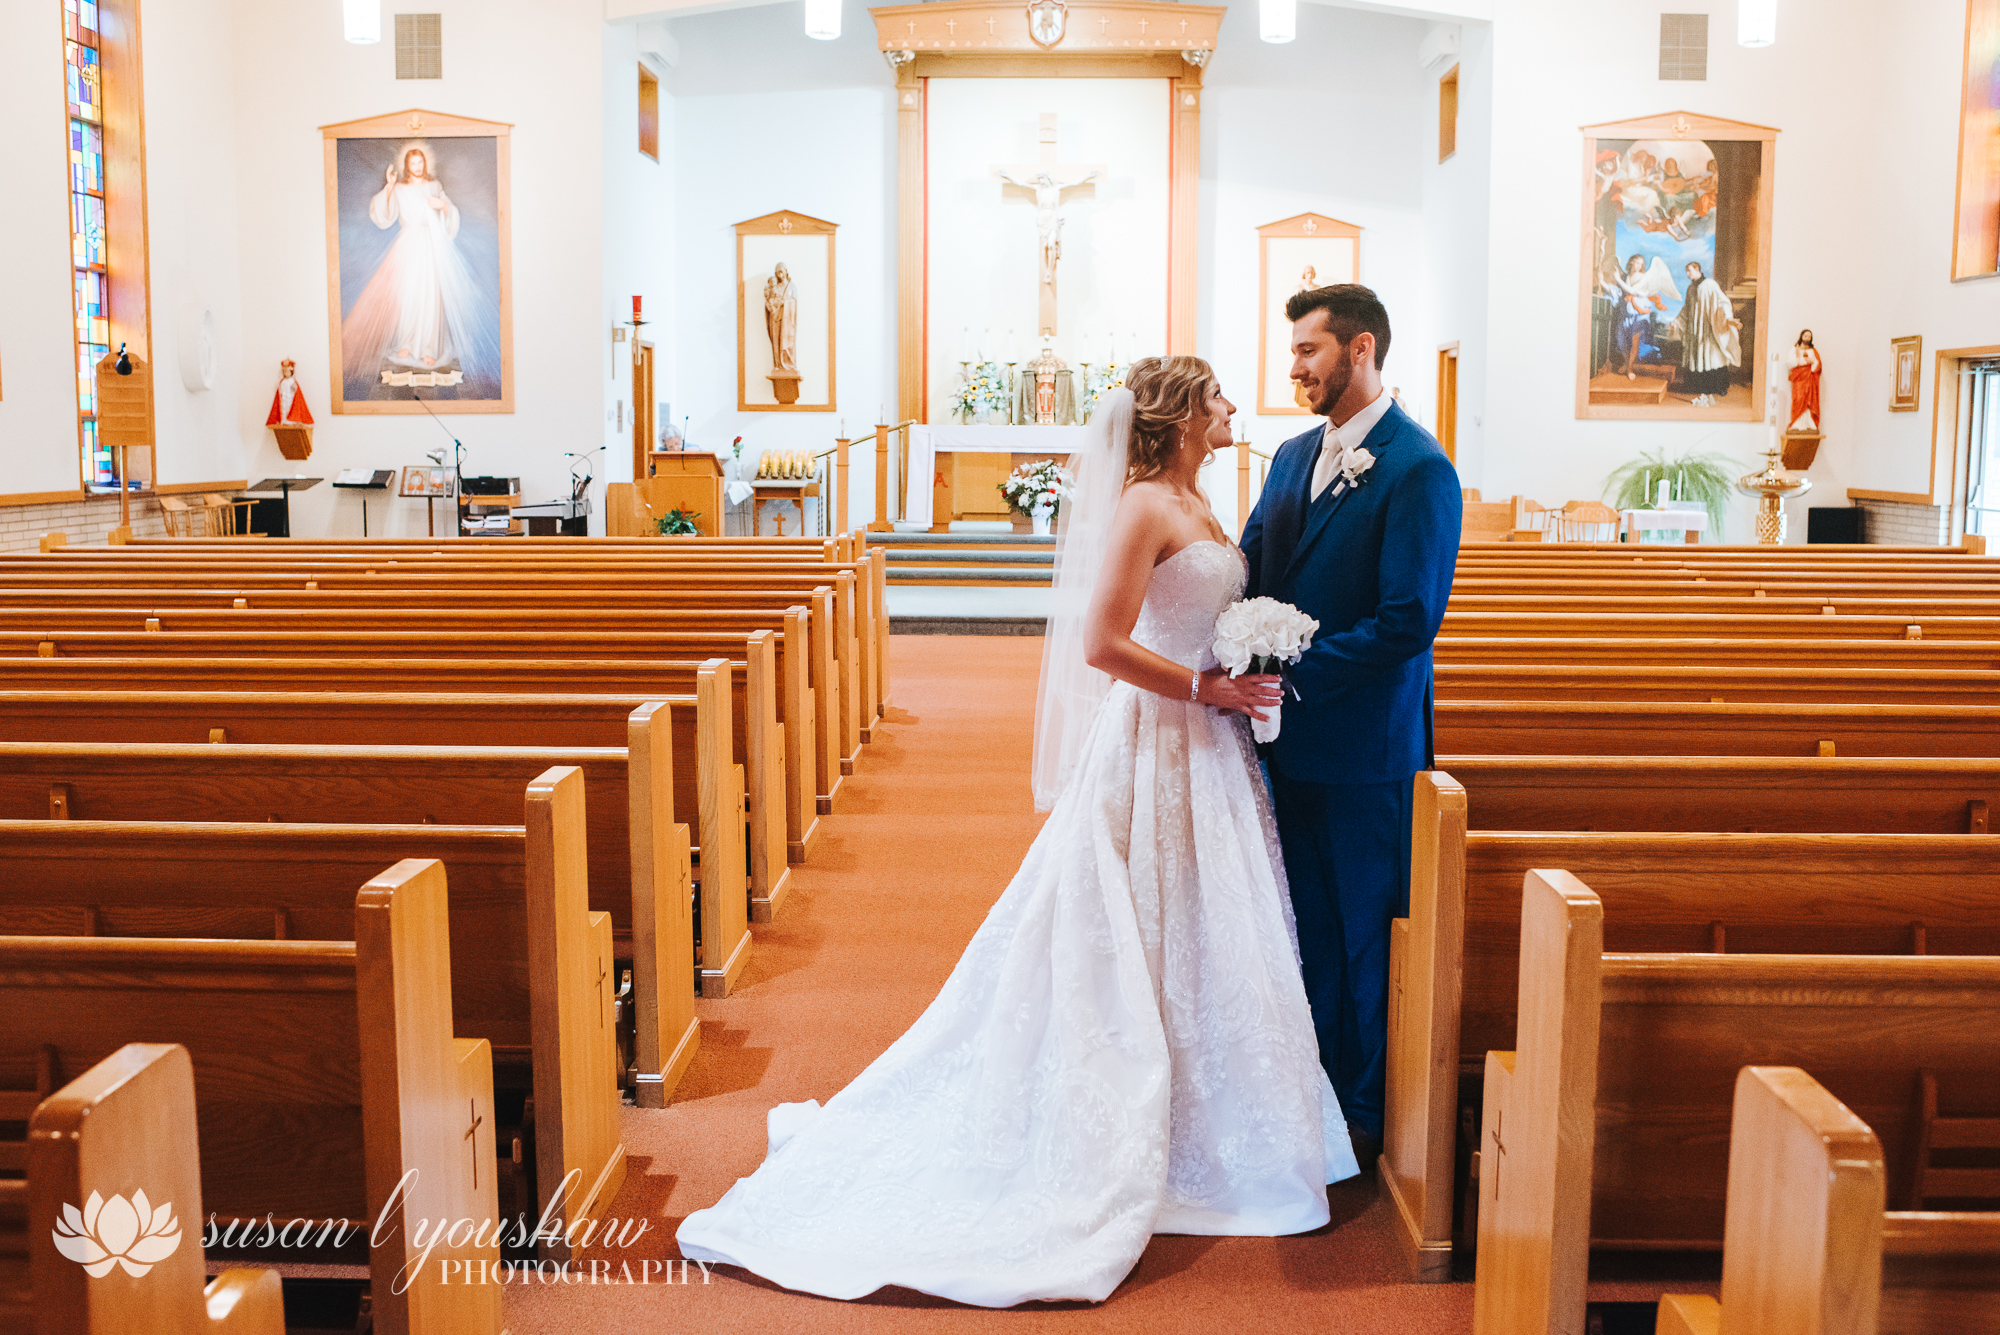 BLOG Kylie and corey Bennet 10-13-2018 SLY Photography LLC-75.jpg